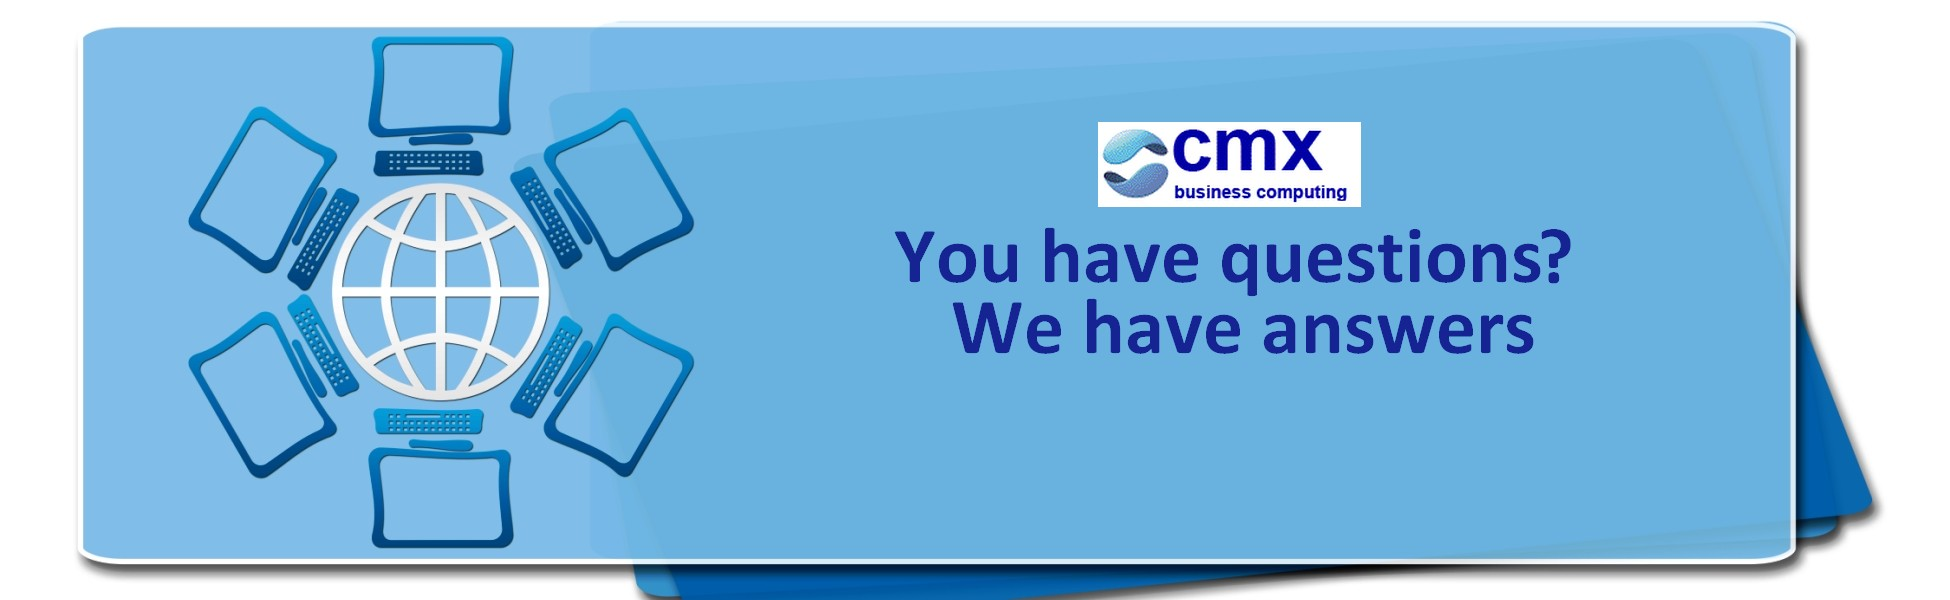 CMX Business Computing